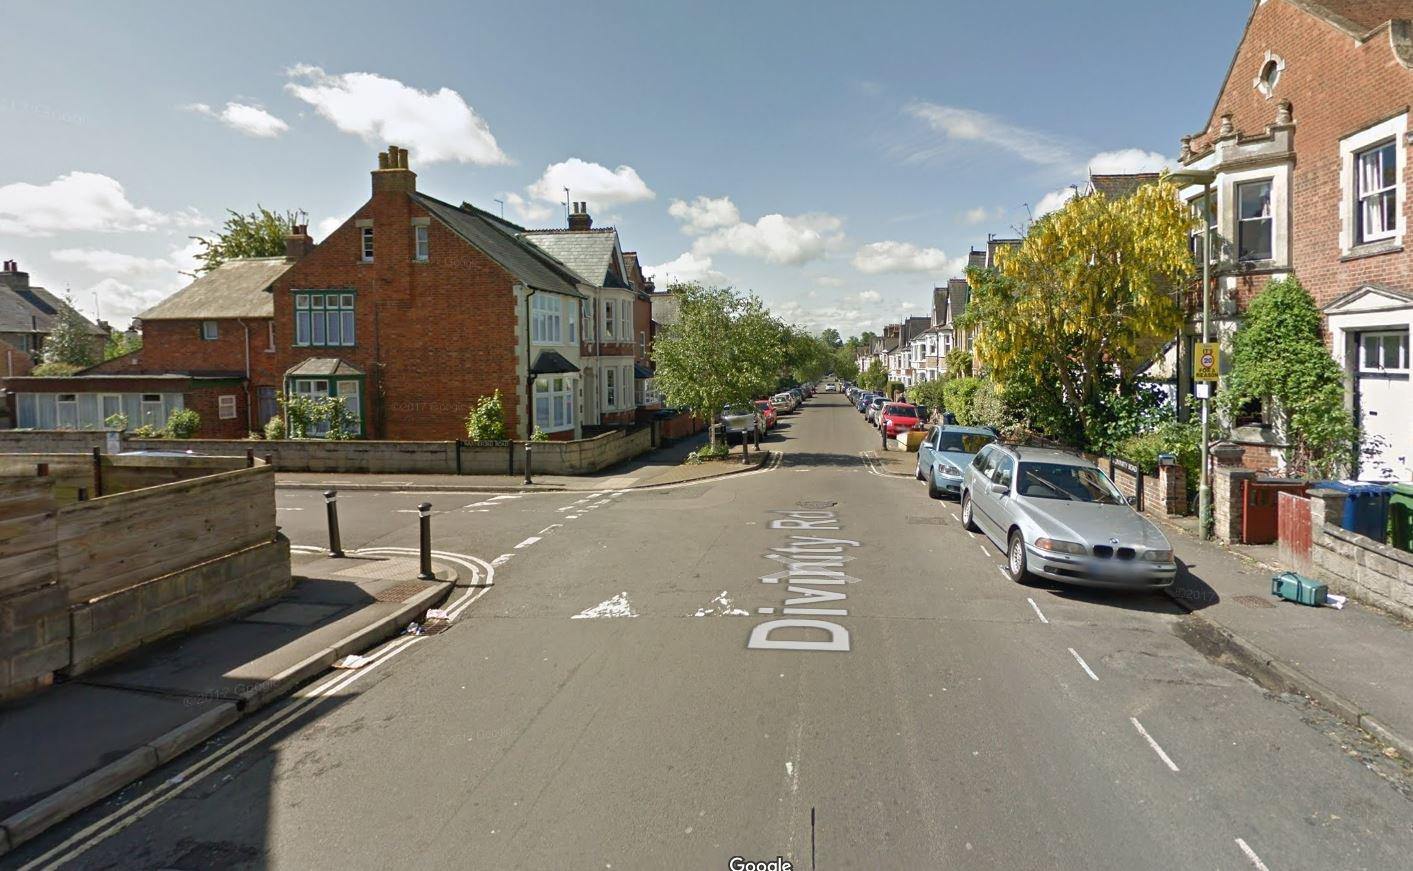 Man climbed through open window and sexually assaulted girl as she slept Police were called to the property in Divinity Road, Oxford, after the alarm was raised and an immediate search of the neighbourhood was carried out but no sign of the attacker was found. Provider: Google Map Source: https://www.google.com/maps/@51.7478,-1.2291604,3a,75y,213.24h,88.12t/data=!3m6!1e1!3m4!1sMqJbqVykSbpVC5_2DtQ8Ew!2e0!7i13312!8i6656